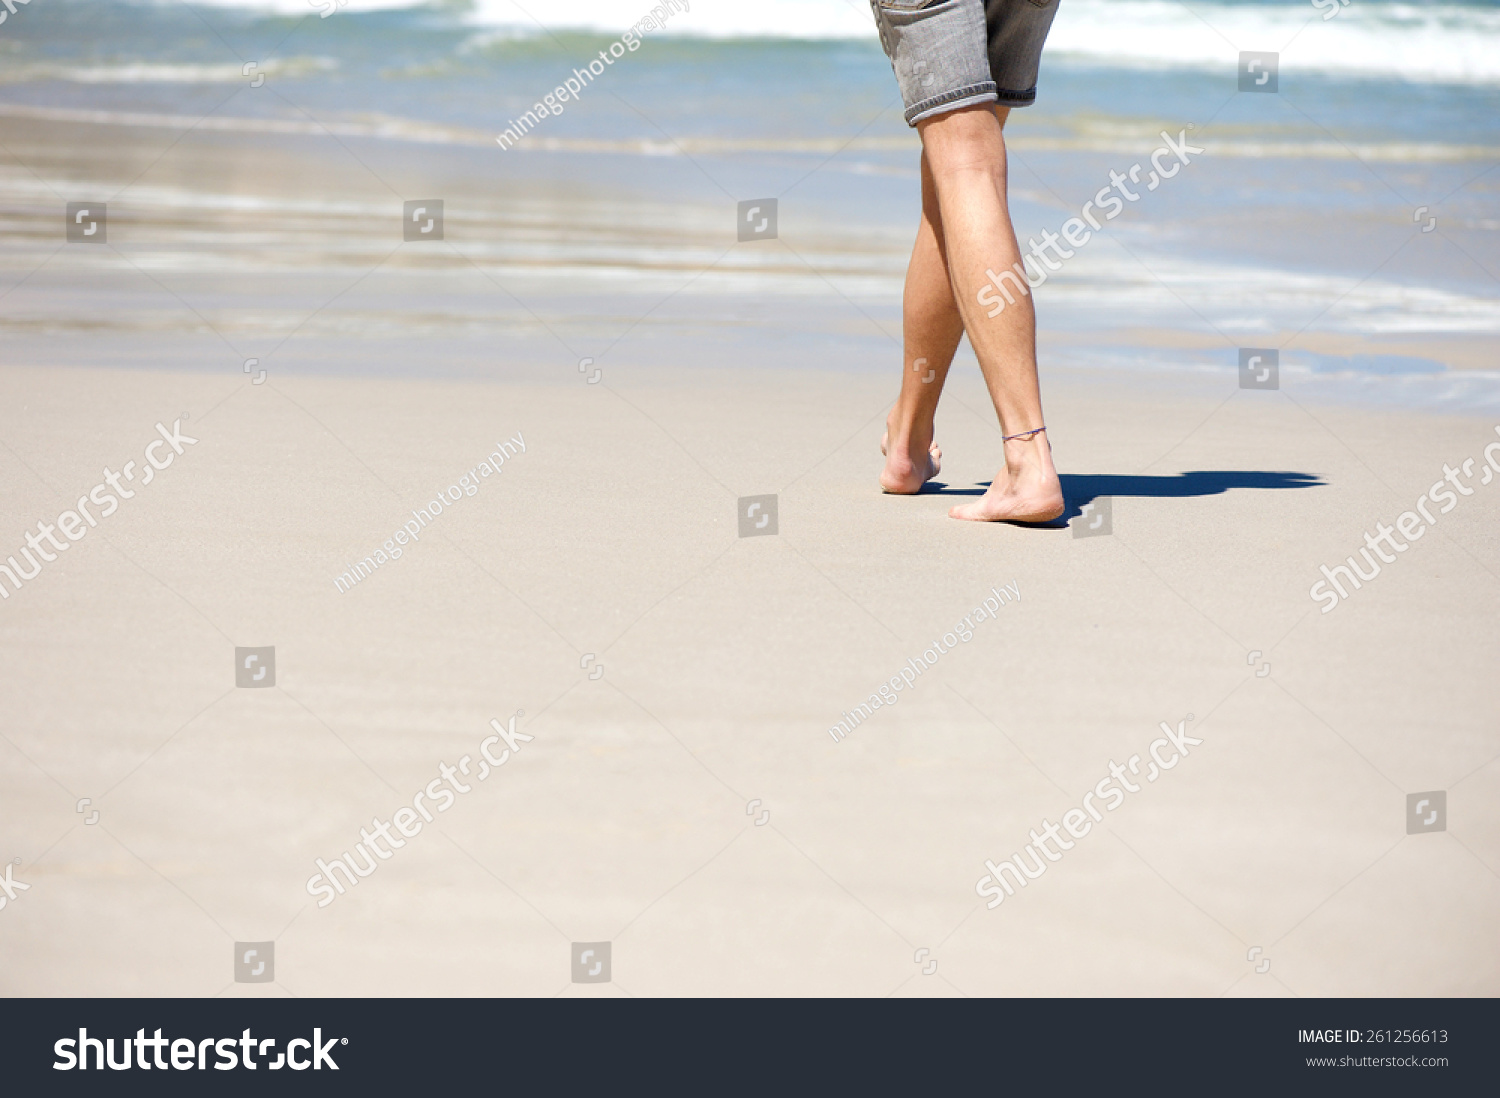 Close up man walking barefoot on vacation at the beach  #261256613